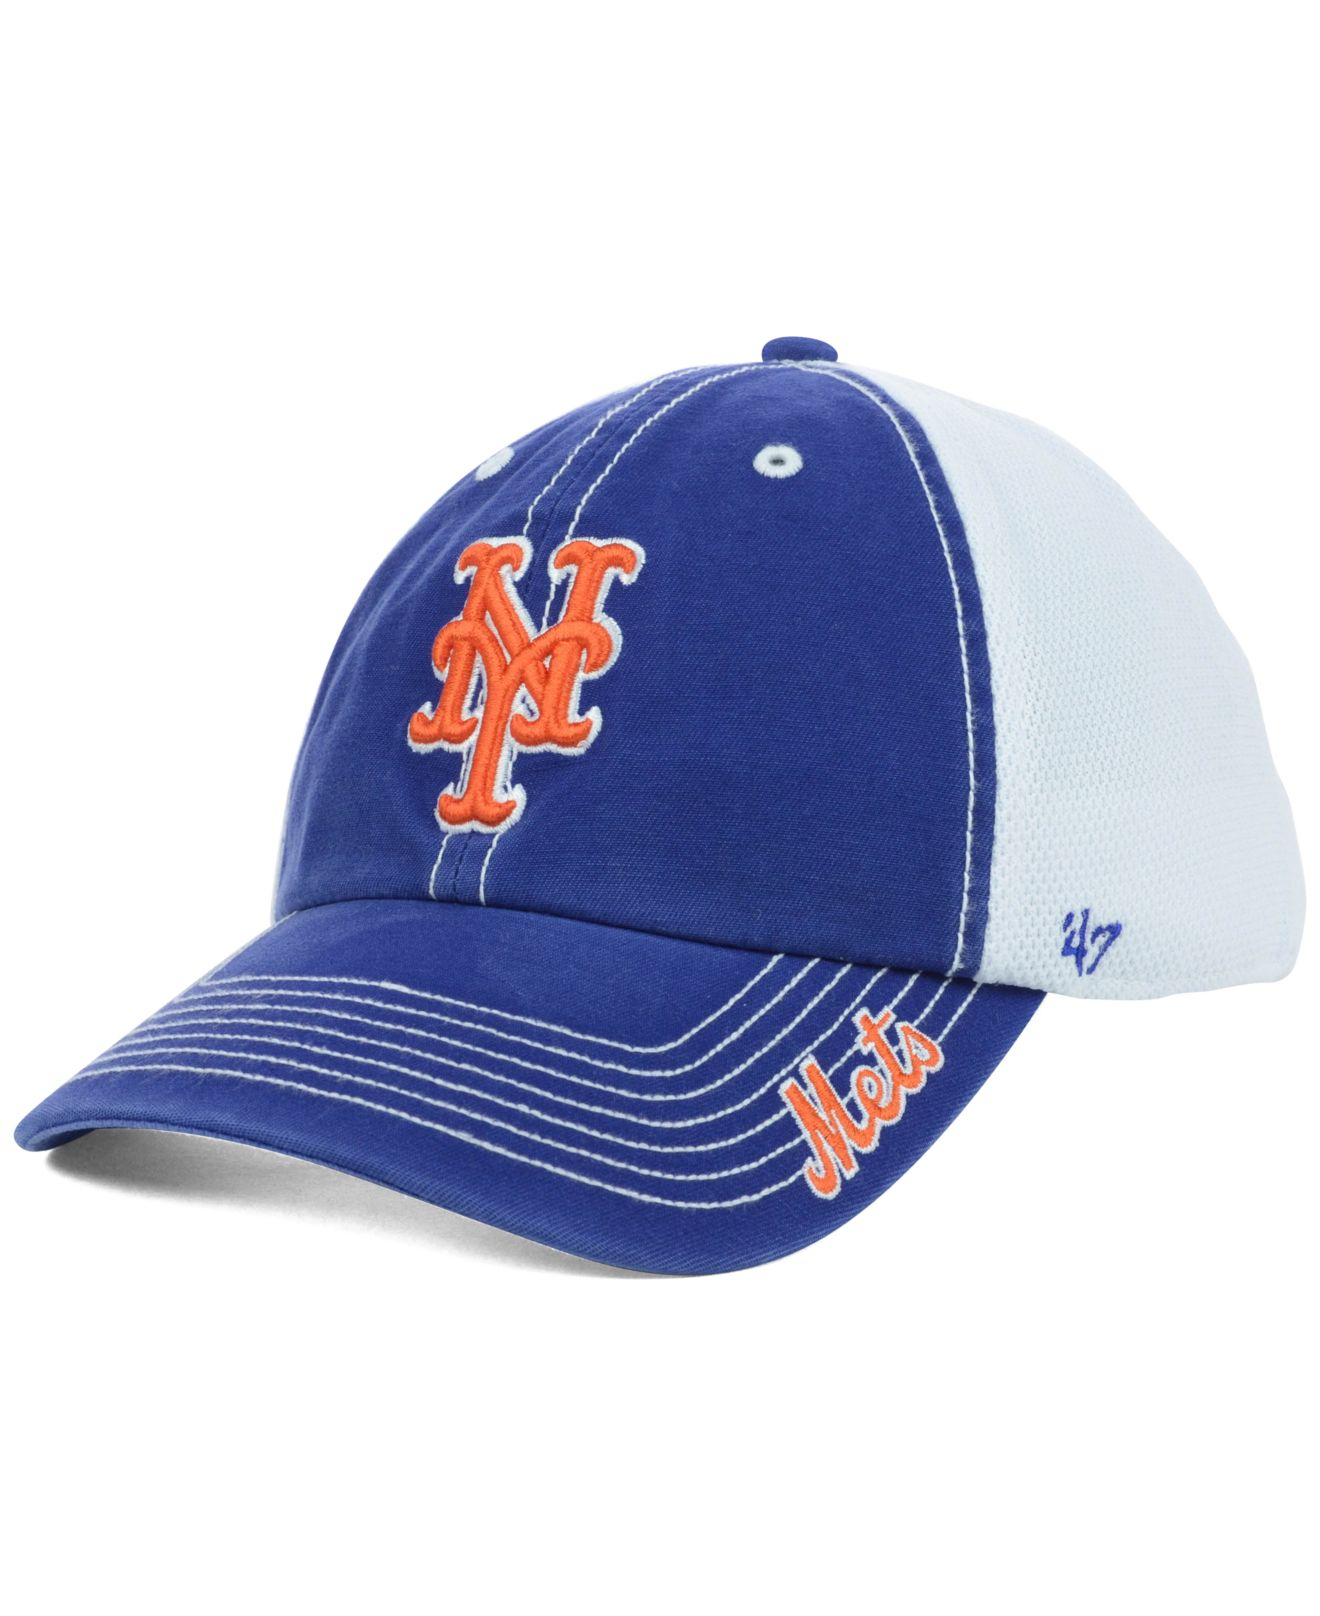 Lyst - 47 Brand New York Mets Mlb Ripley Cap in Blue for Men 30b847d193